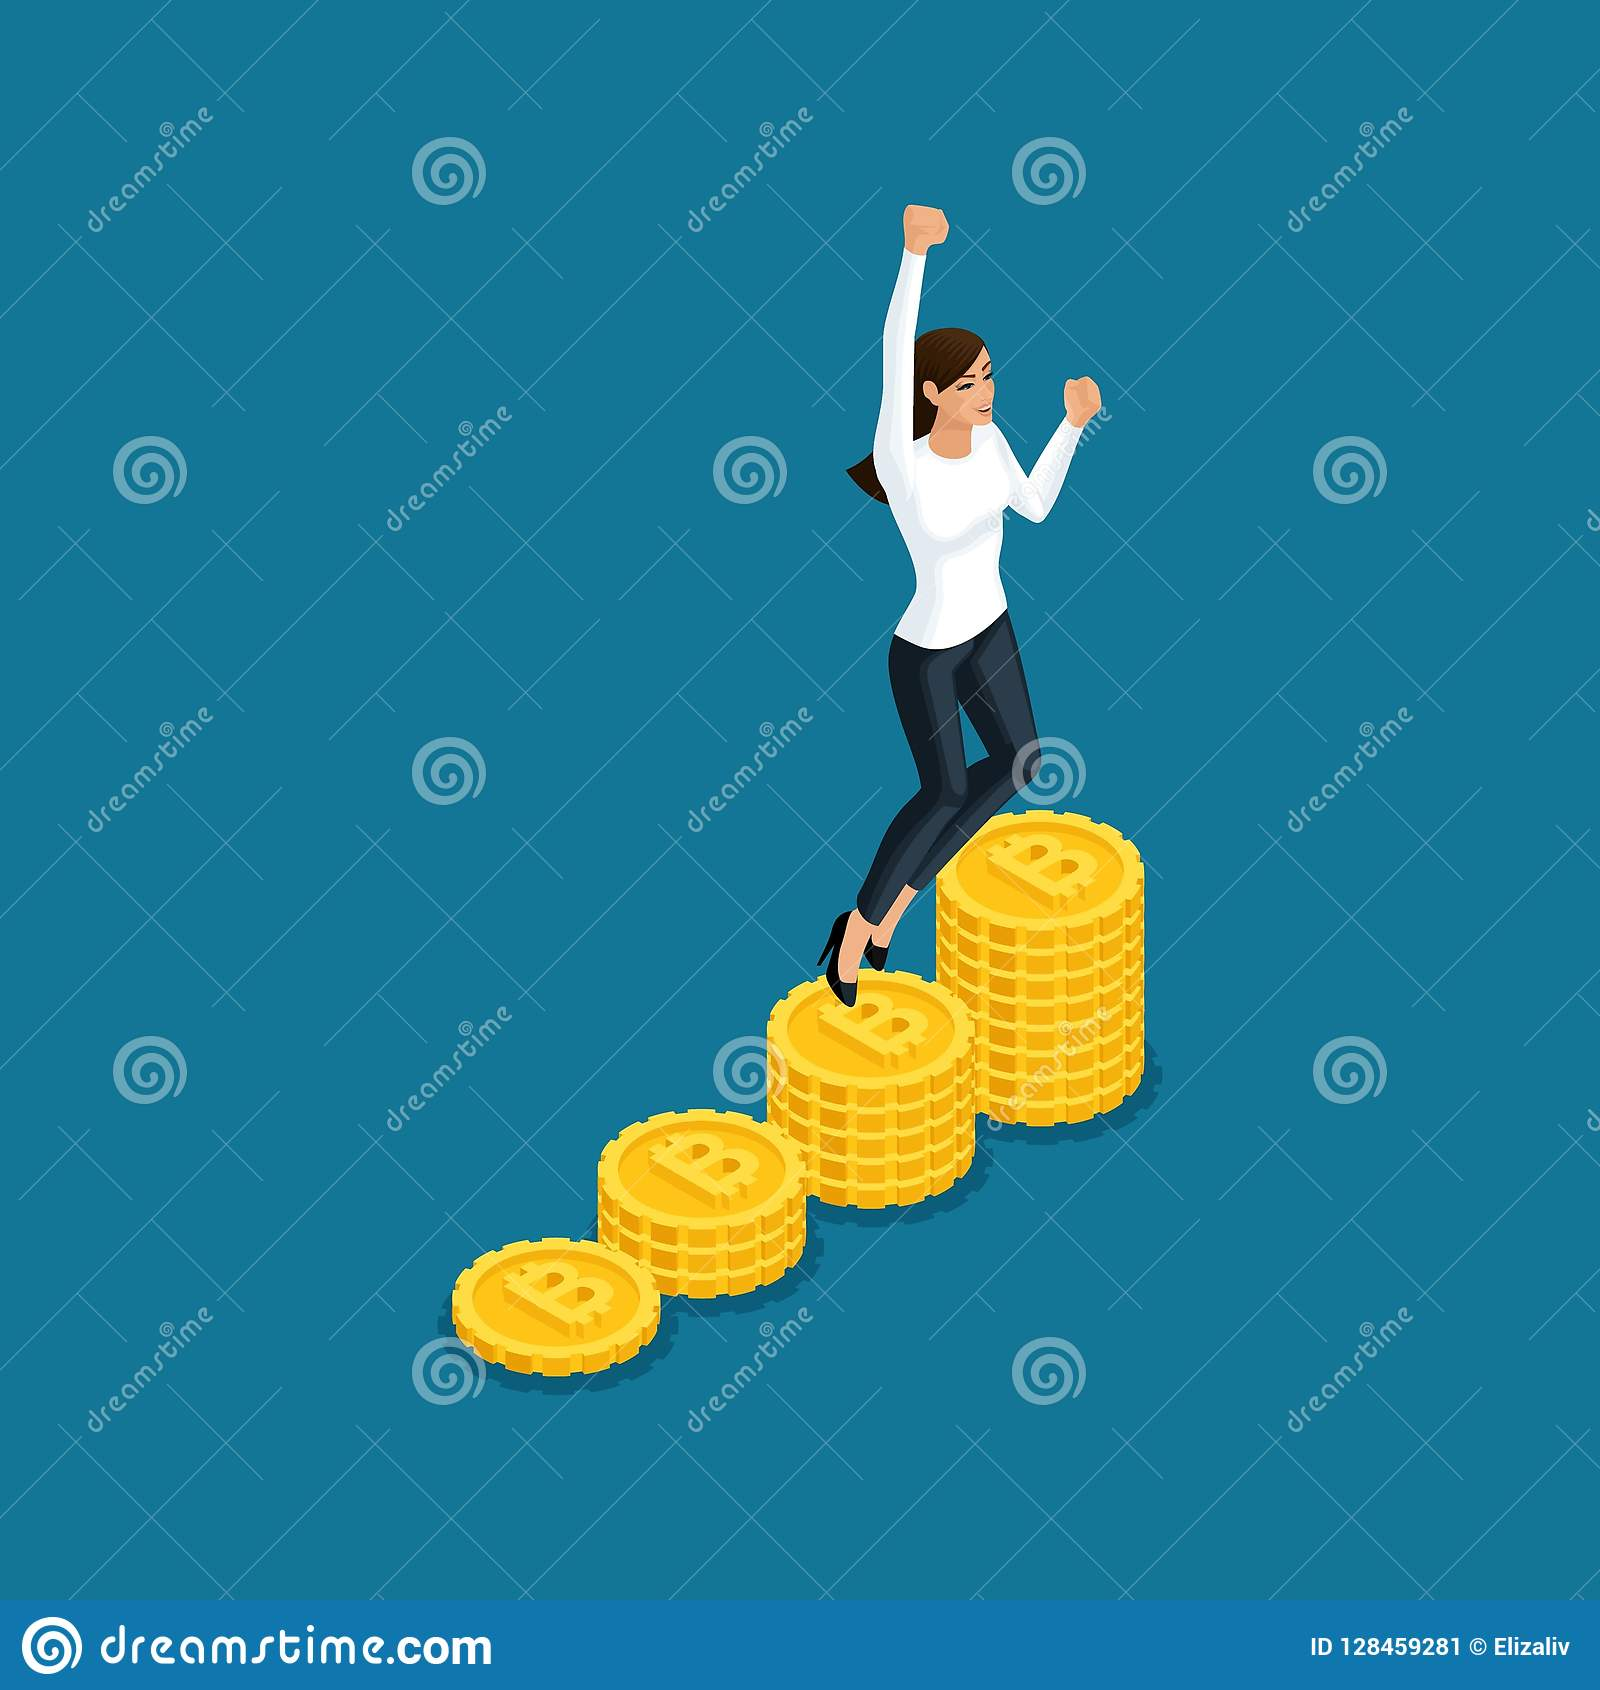 Isometric business woman jumping rejoices big profit ico blockchain cryptocurrency mining, startup project isolated vector illustr